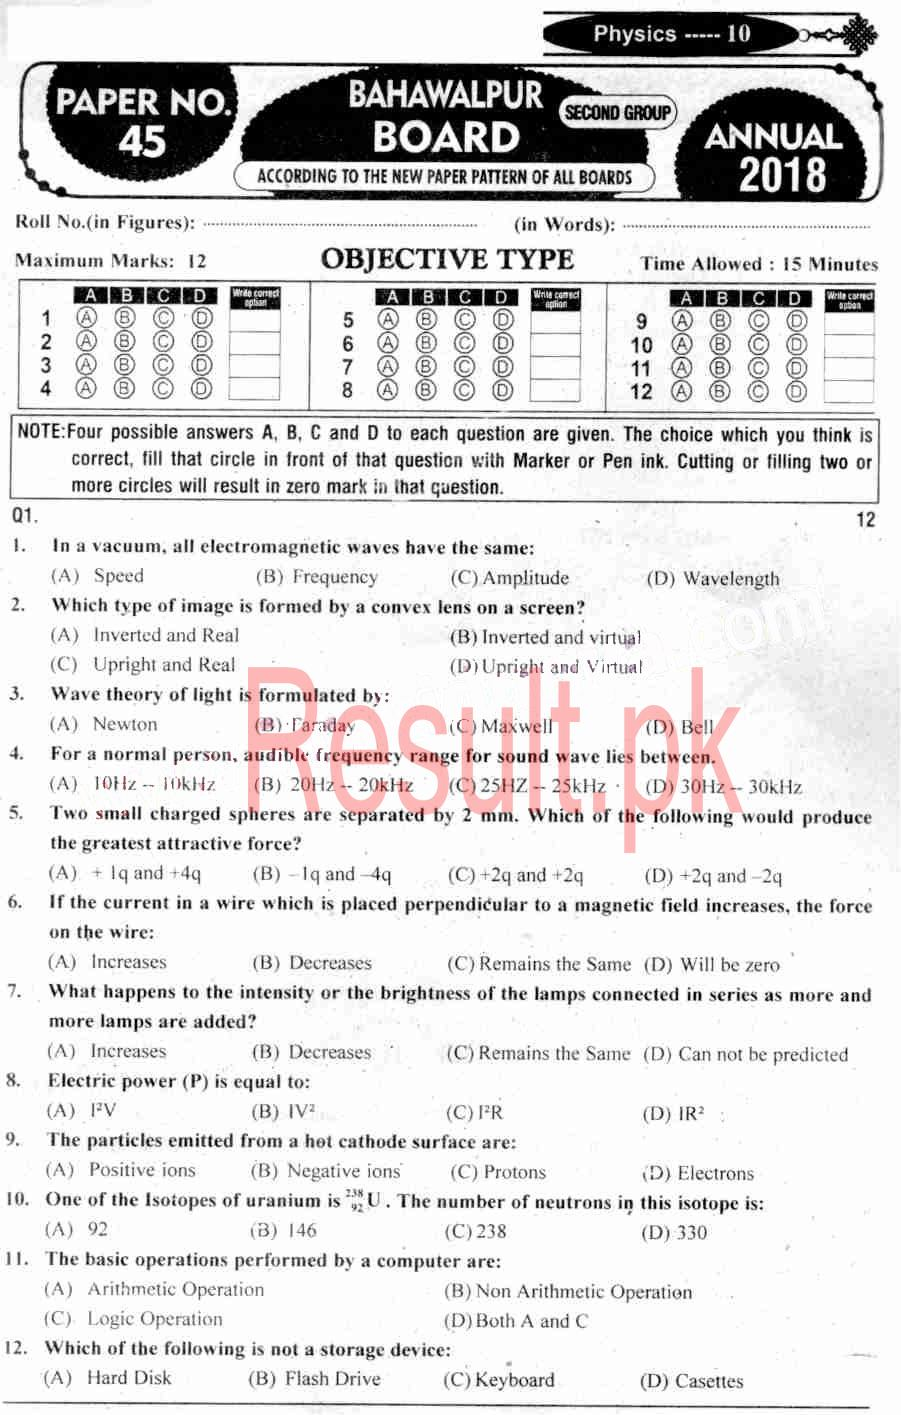 BISE Bahawalpur Board Past Papers 2019 Matric, SSC Part 1